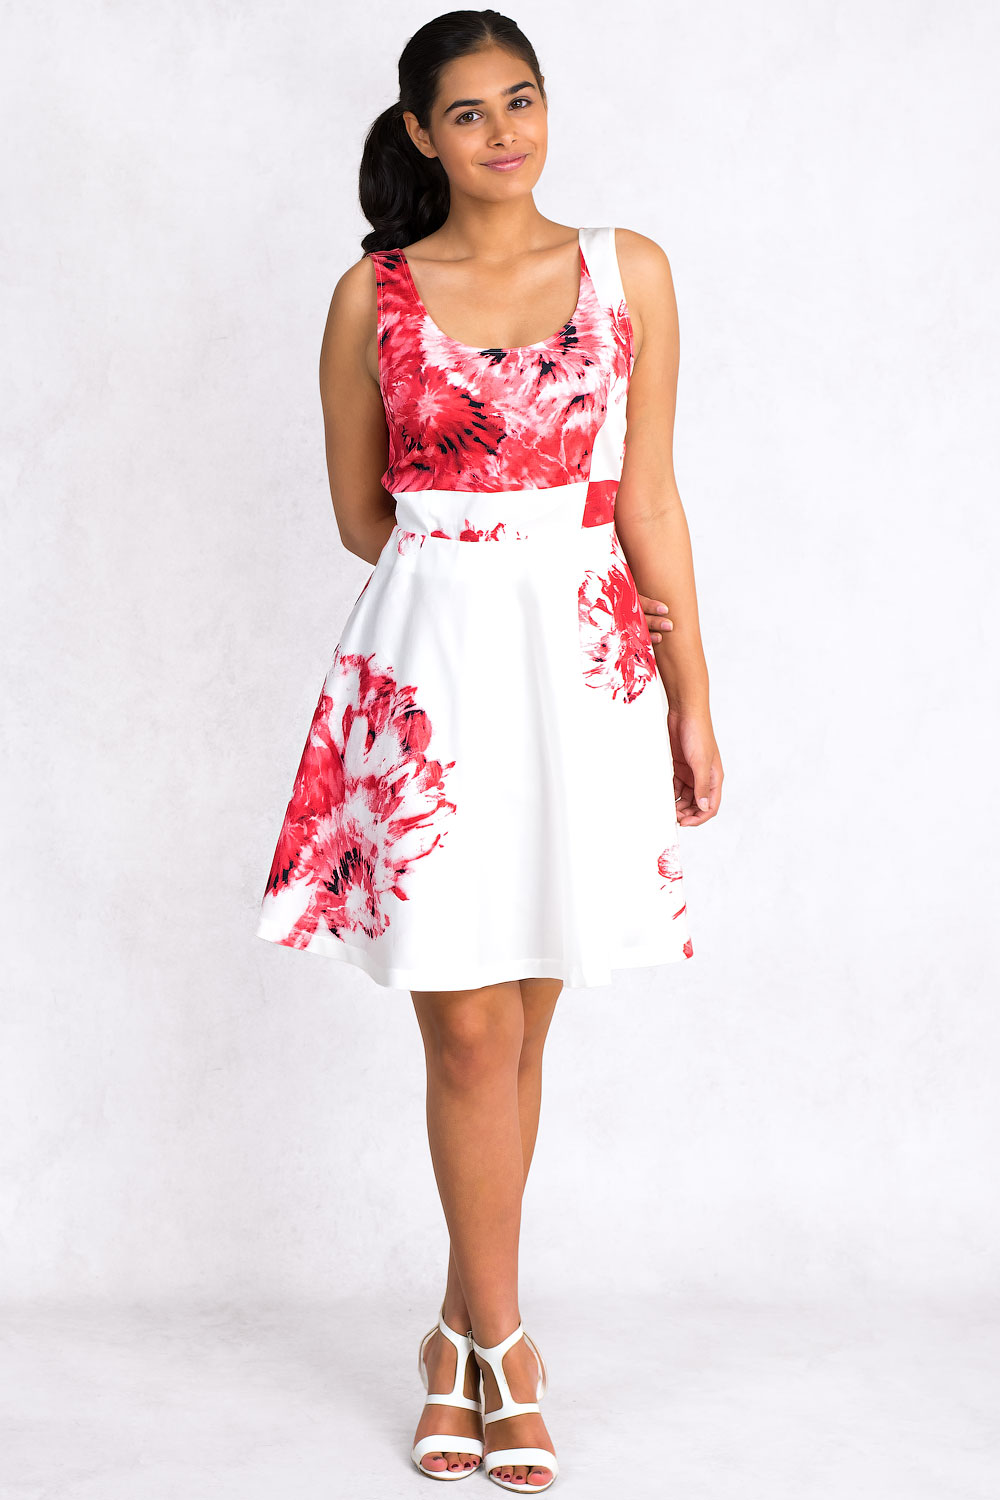 Sistes Red Flower Print Cotton Dress With Open Back Claddio